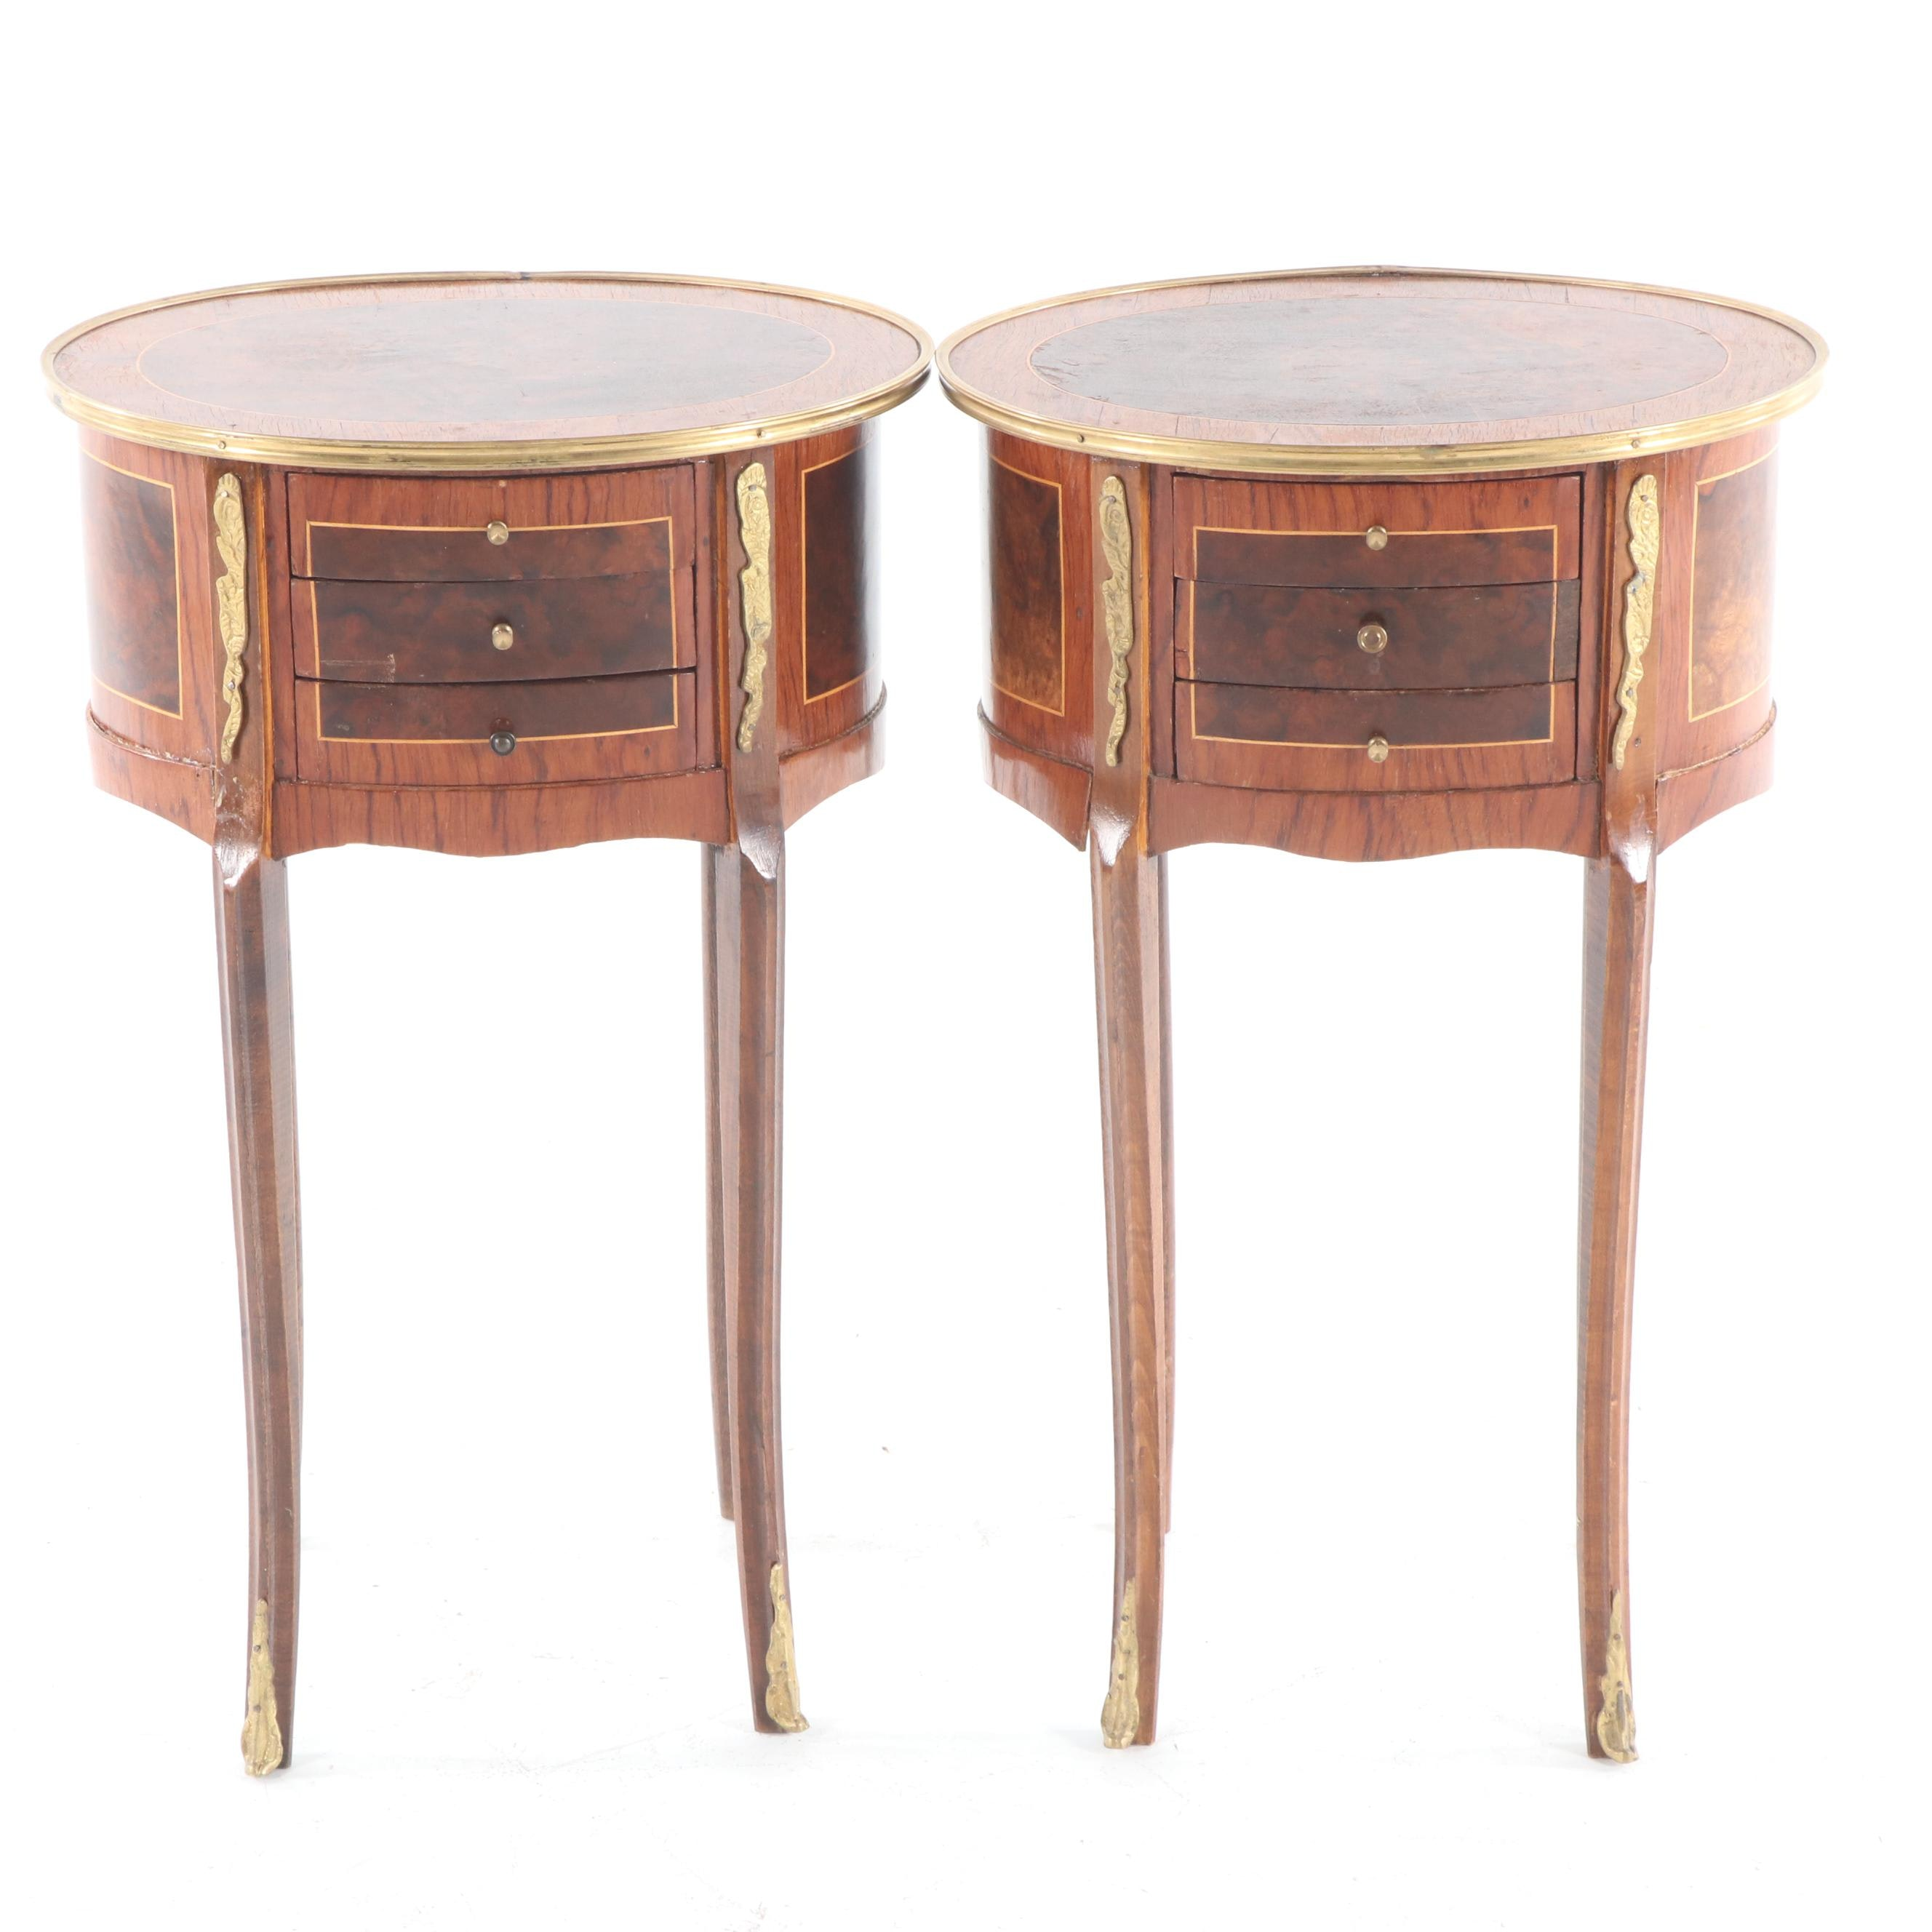 Louis XV Style Inlaid Side Tables